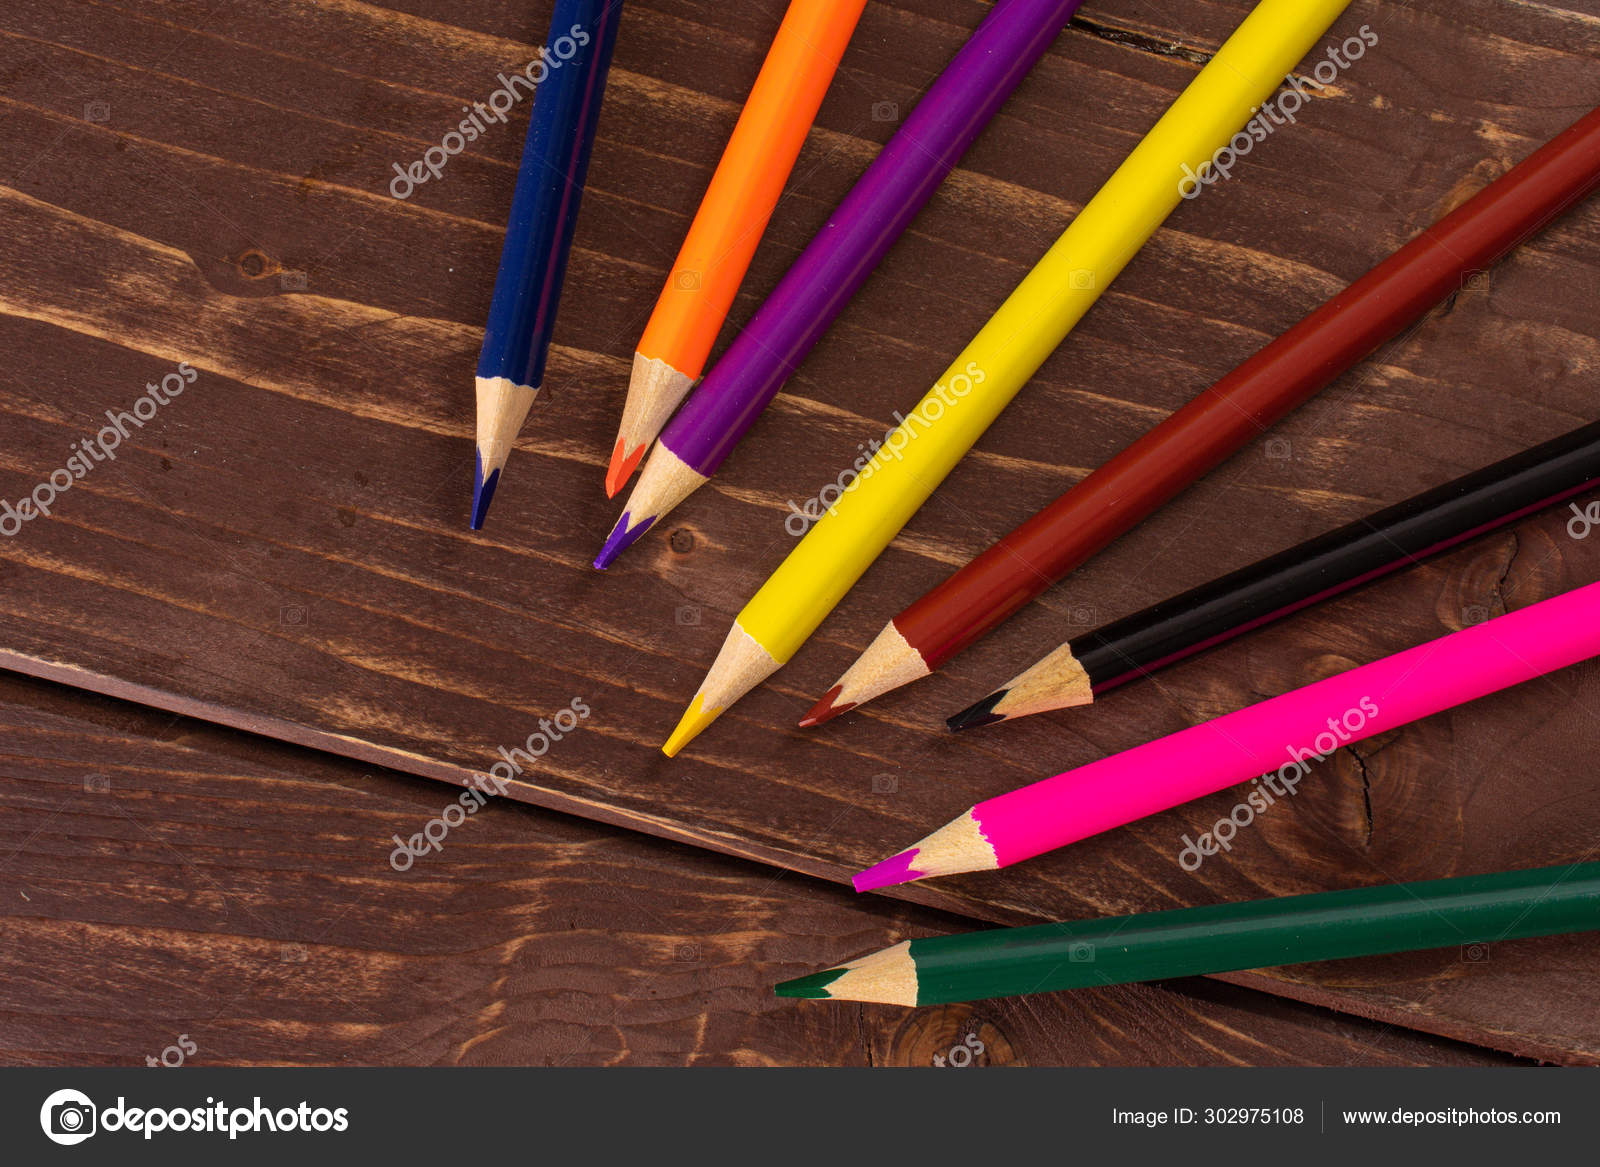 https depositphotos com 302975108 stock photo vibrant colored pencil on brown html